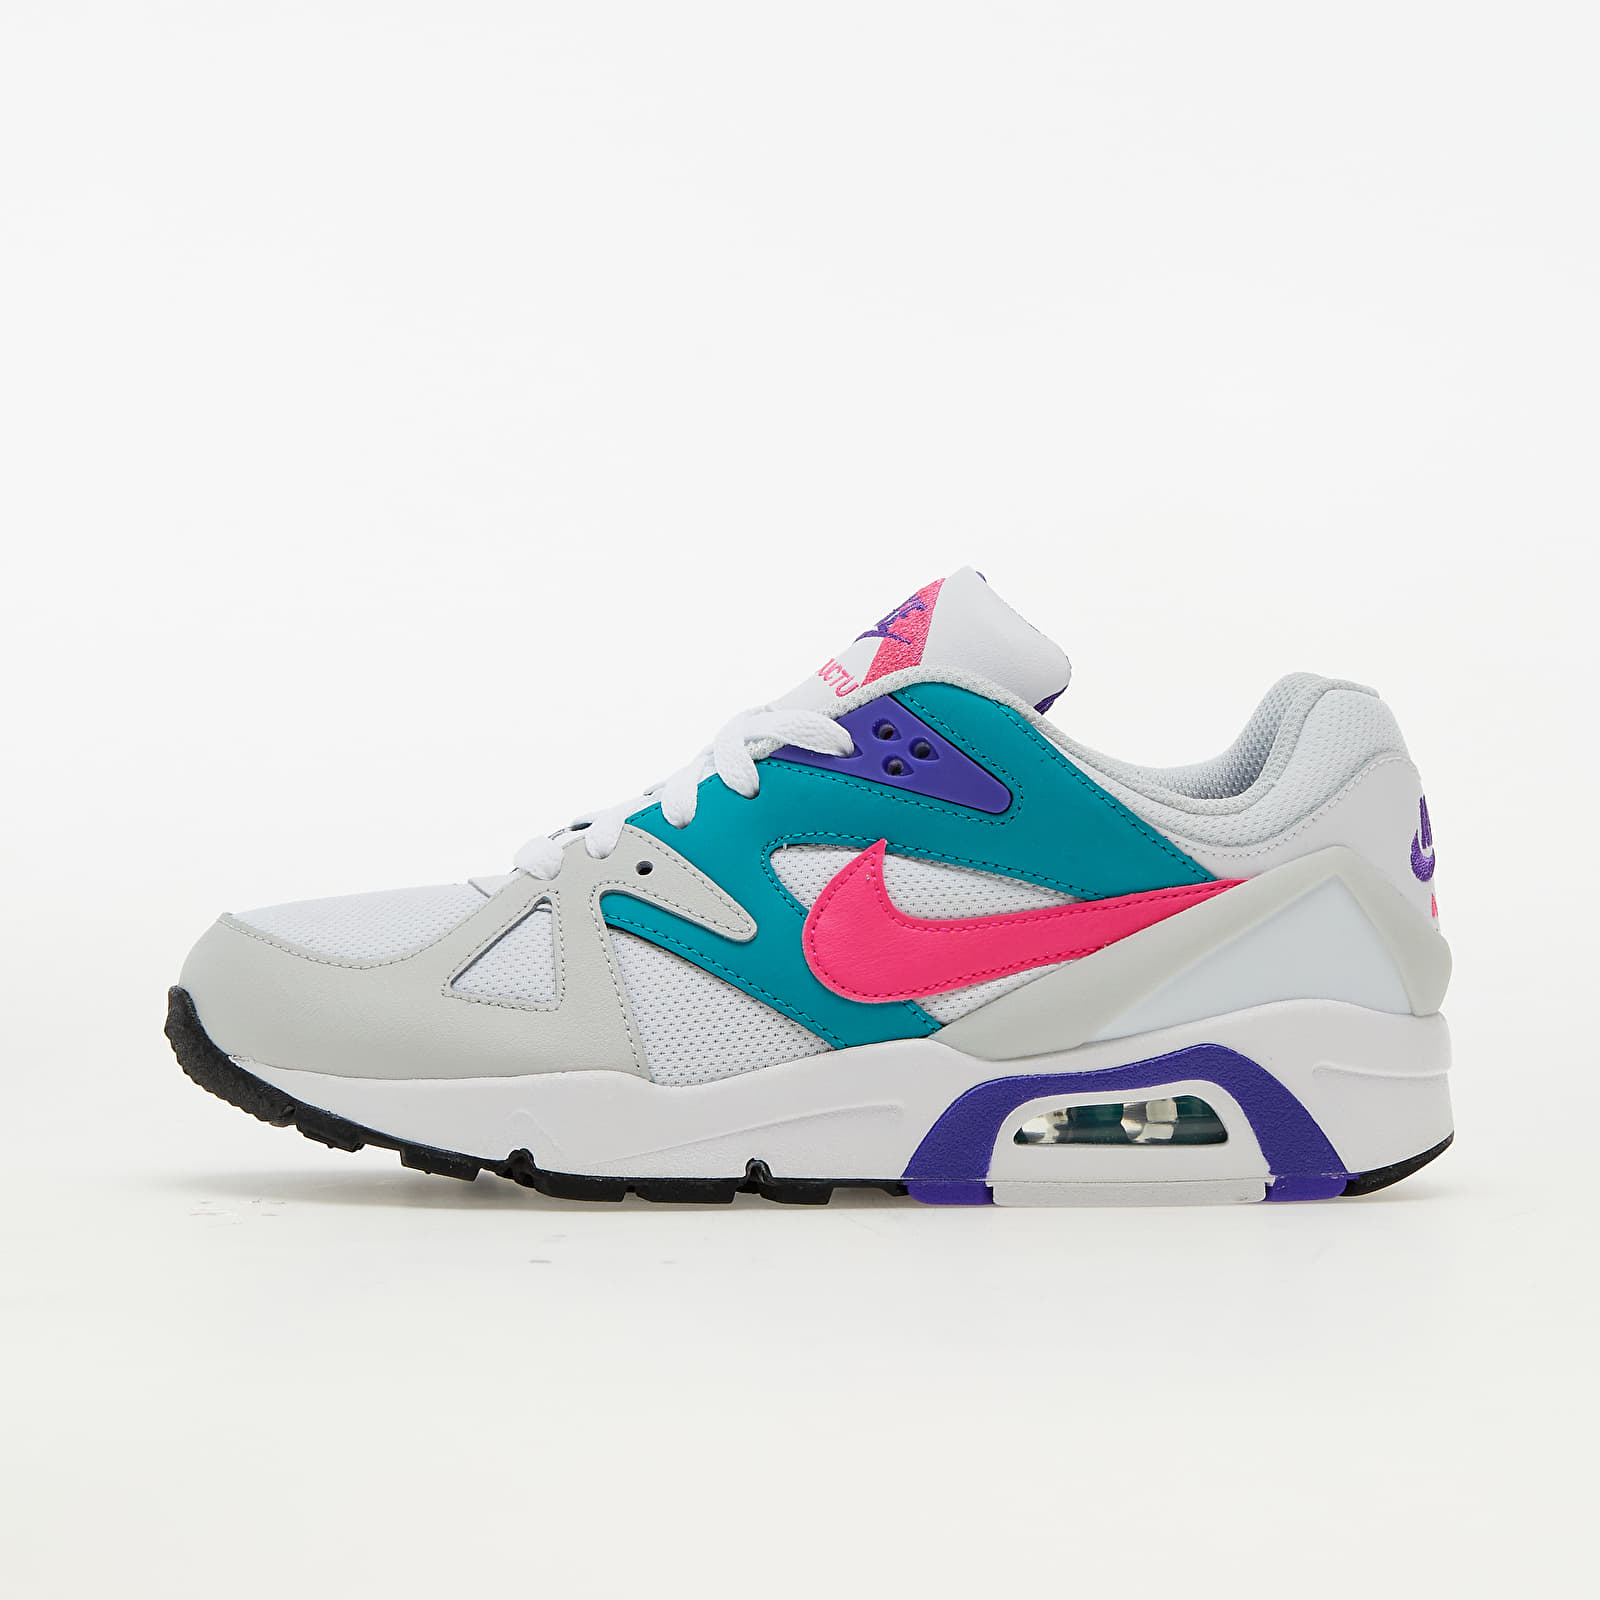 Nike W Air Structure White/ Hyper Pink-Turbo Green-Photon Dust CZ1529-100